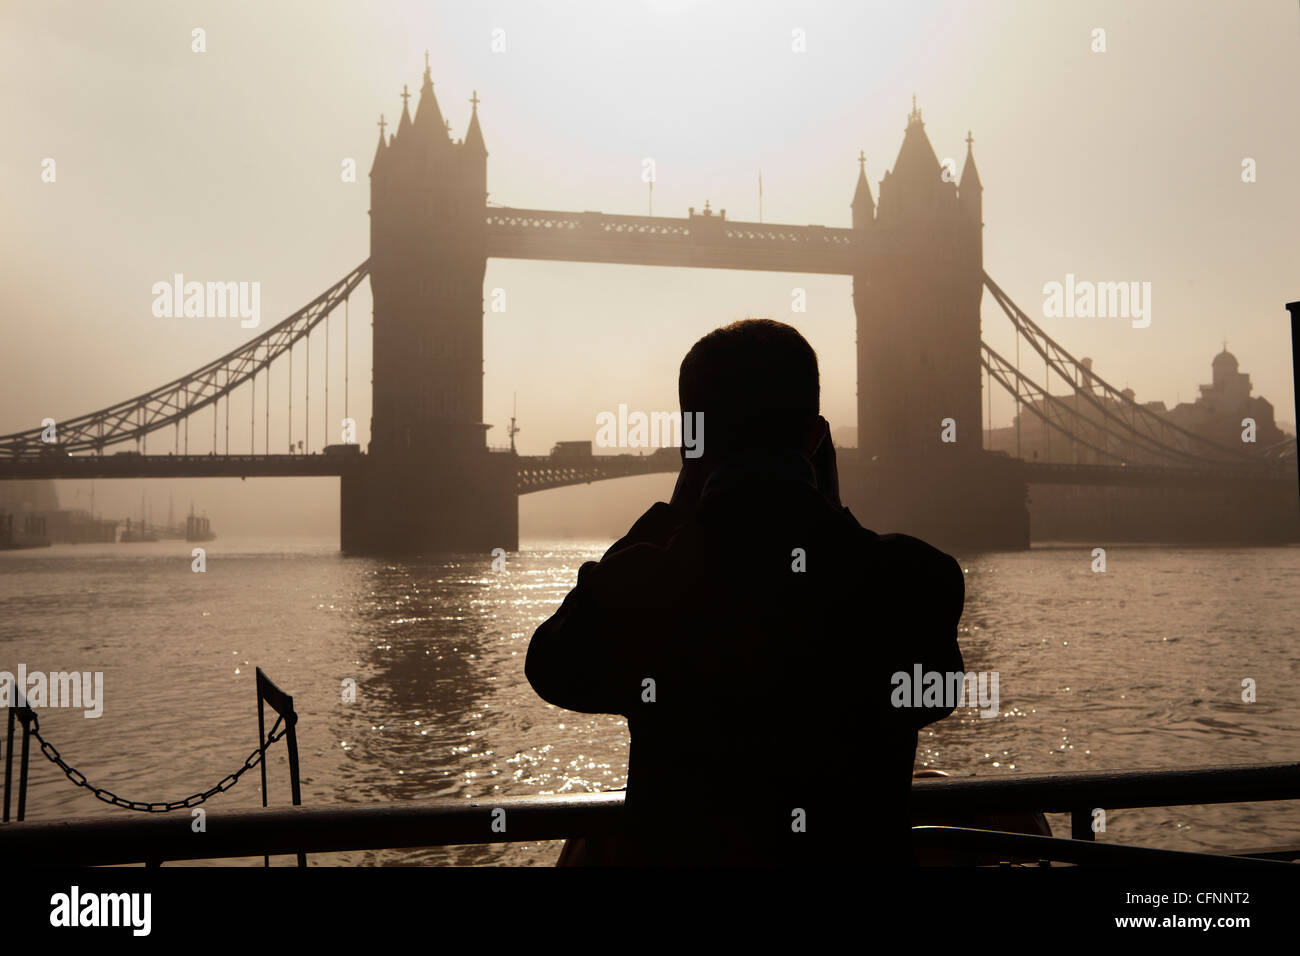 the silhouette of a tourist taking a photograph of Tower Bridge at dawn - Stock Image